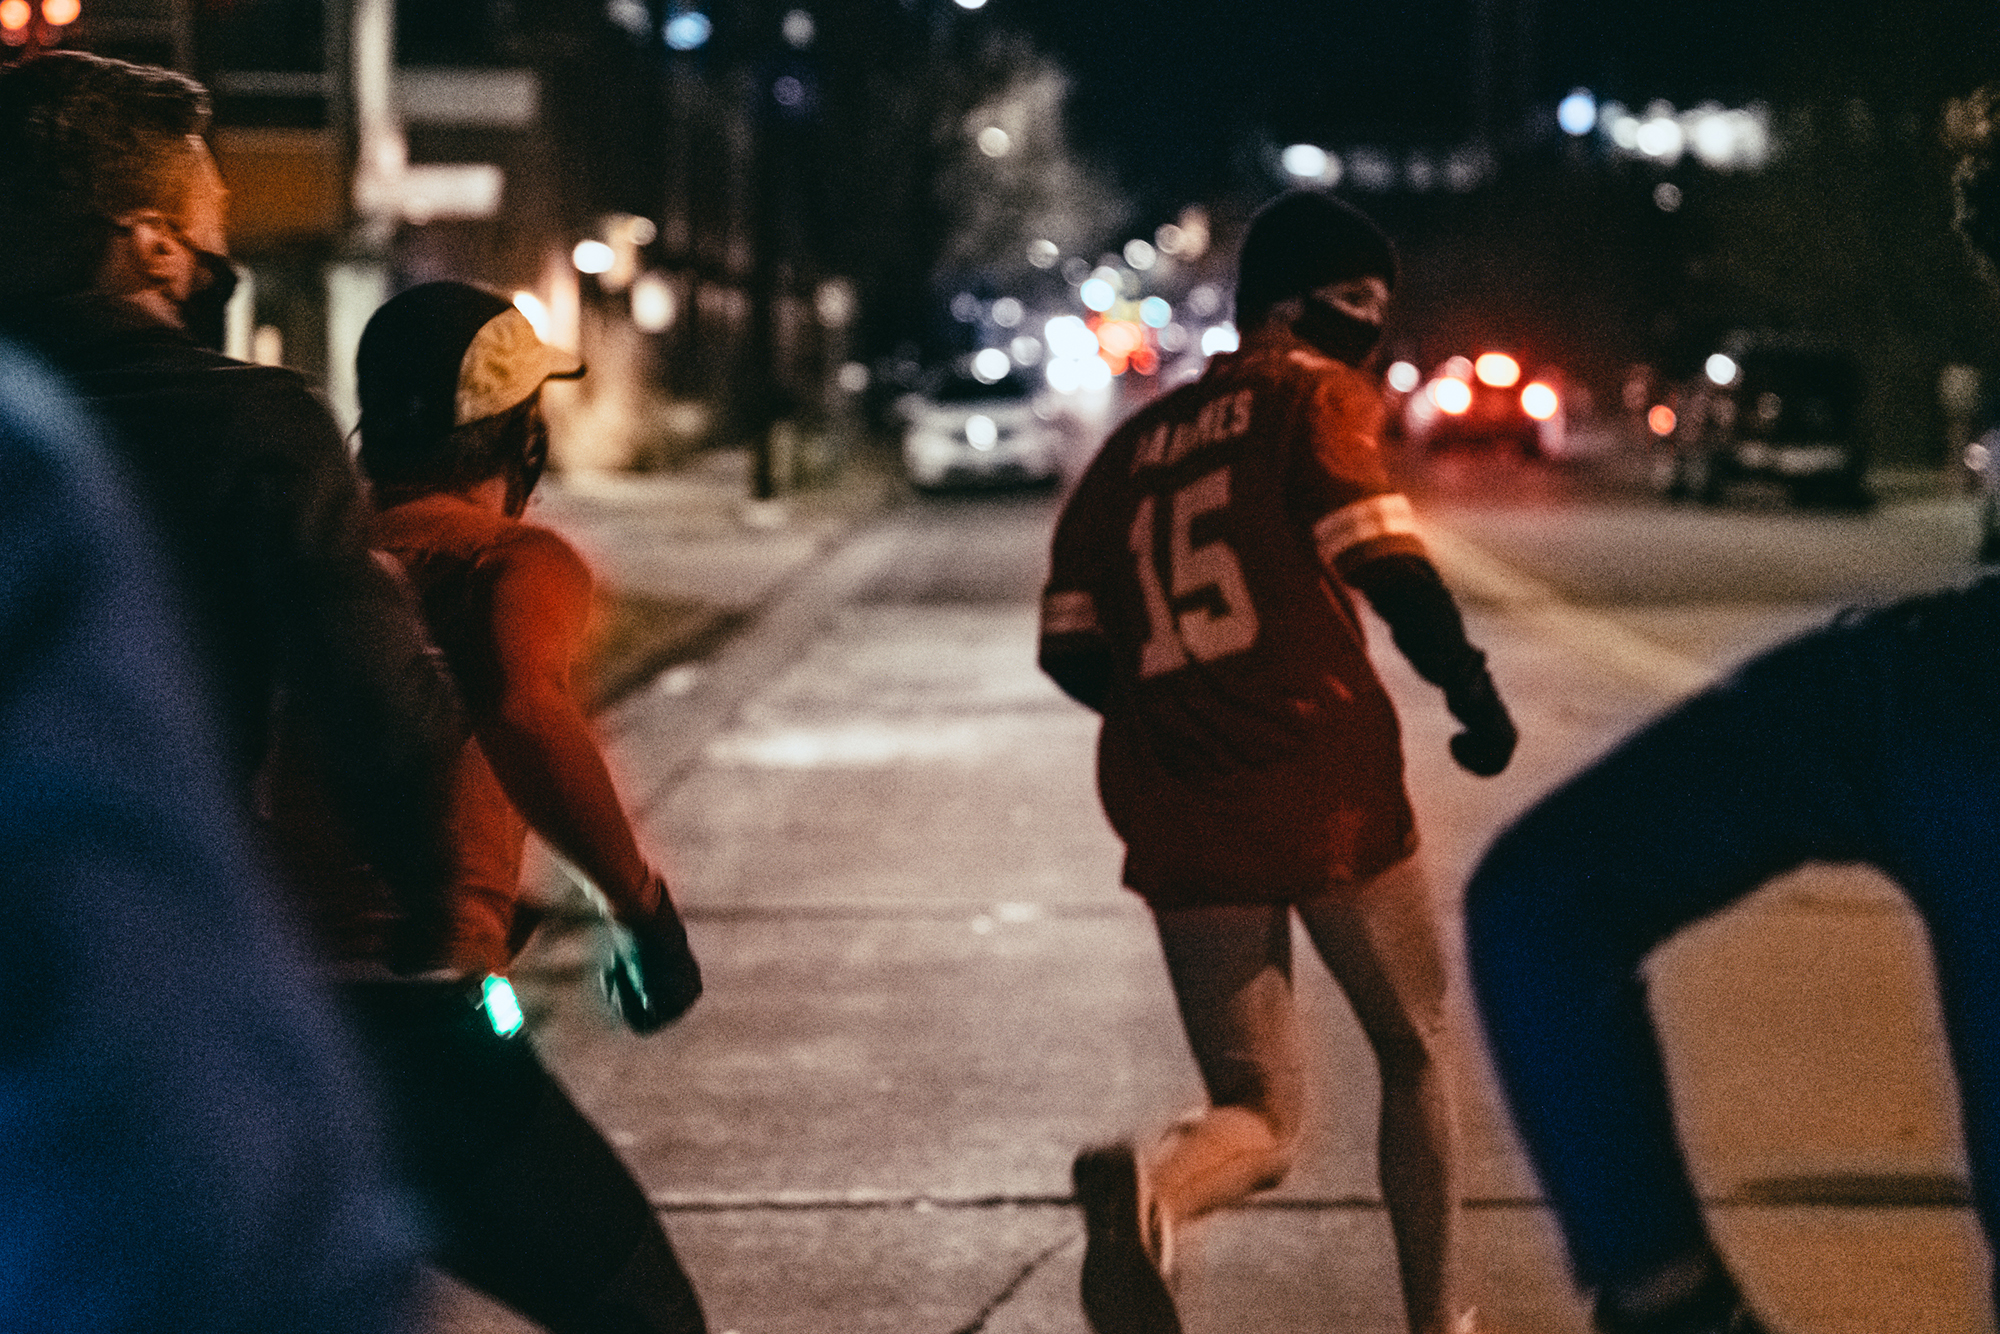 Matt Trape photographs male runners in the dark as they turn on to a busy street for TTB in Denver